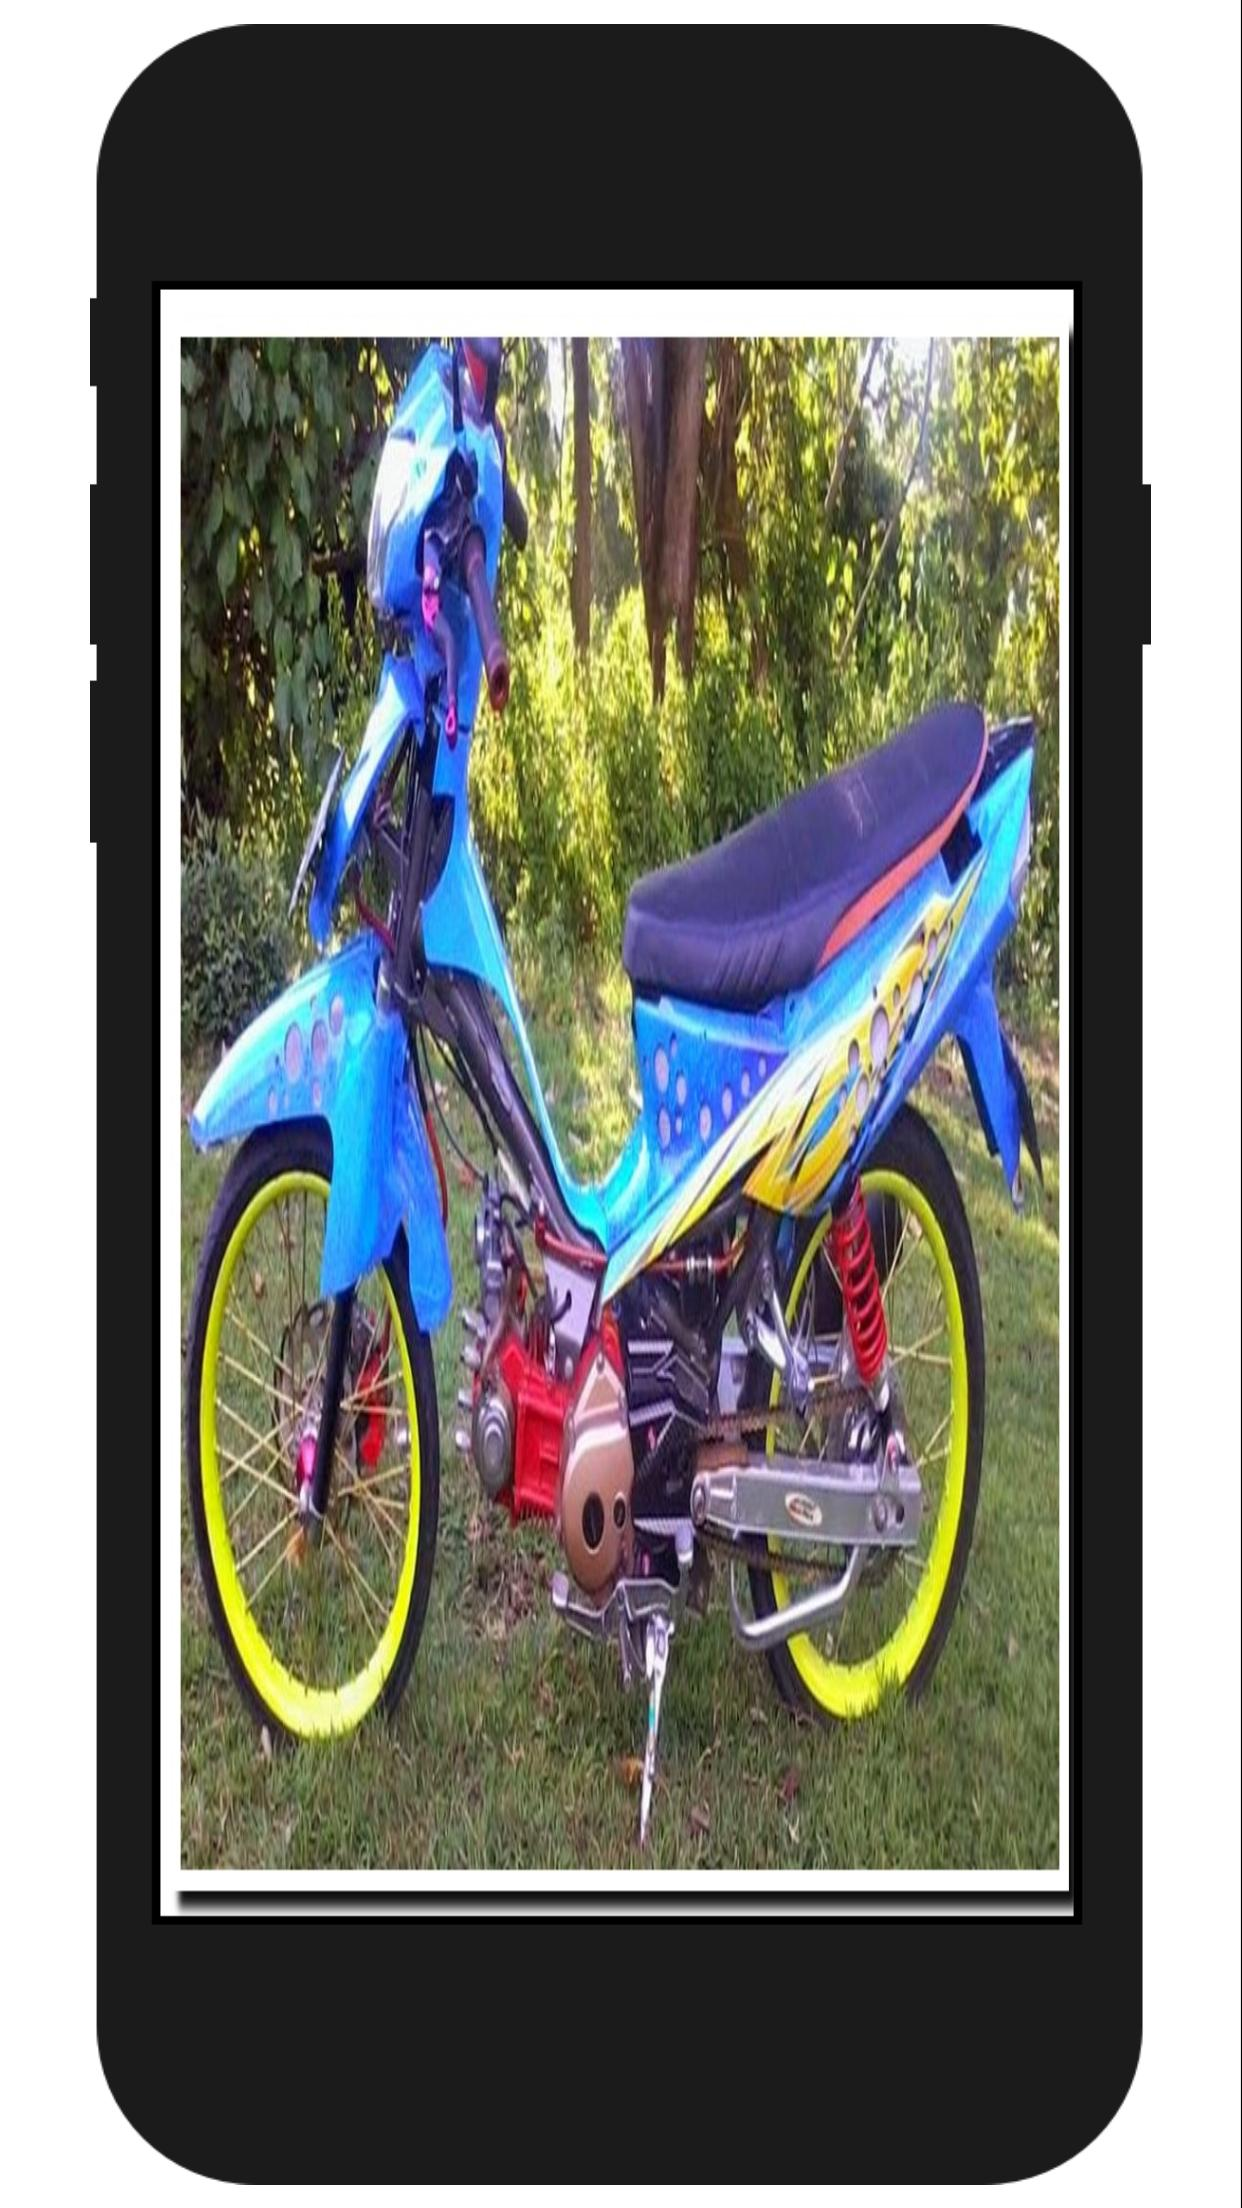 A Vega Thailook Motor Modification For Android Apk Download